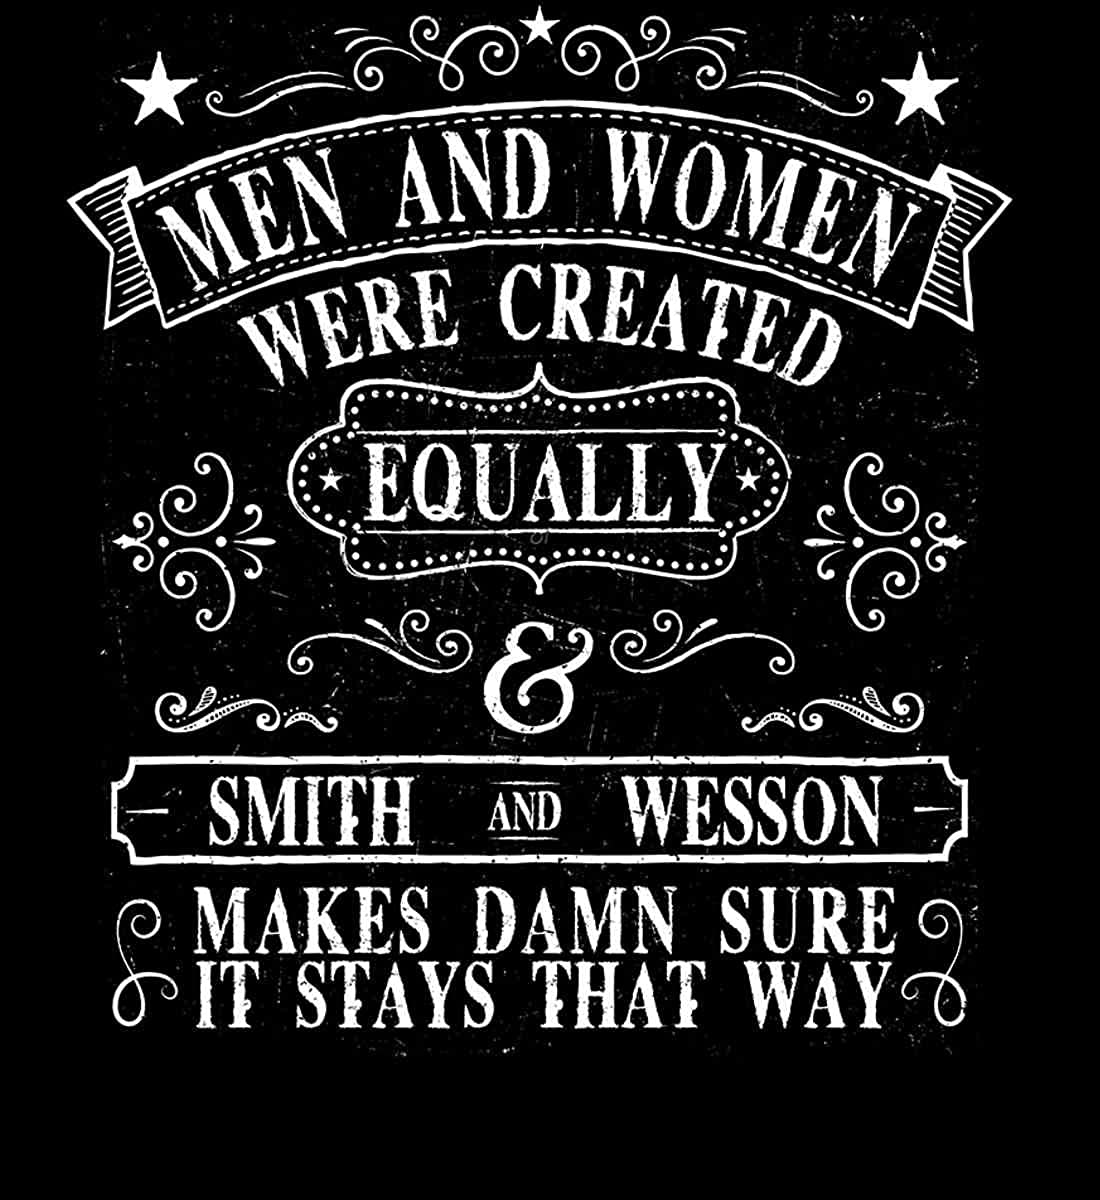 Sons Of Liberty Men and Women were Created Equally Long Sleeve Shirt